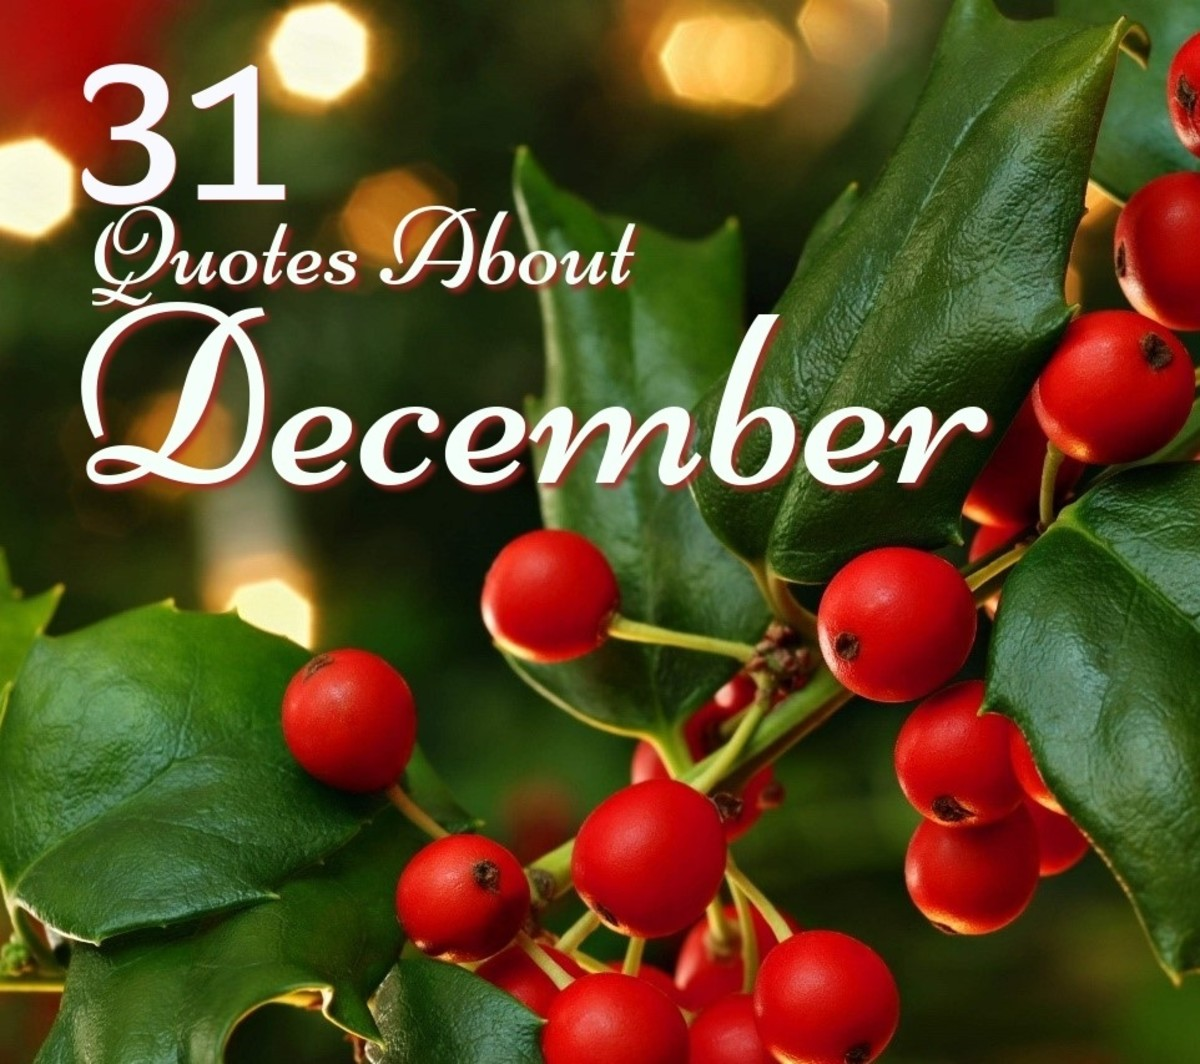 31 Quotes About December: Month of Joy and Celebration